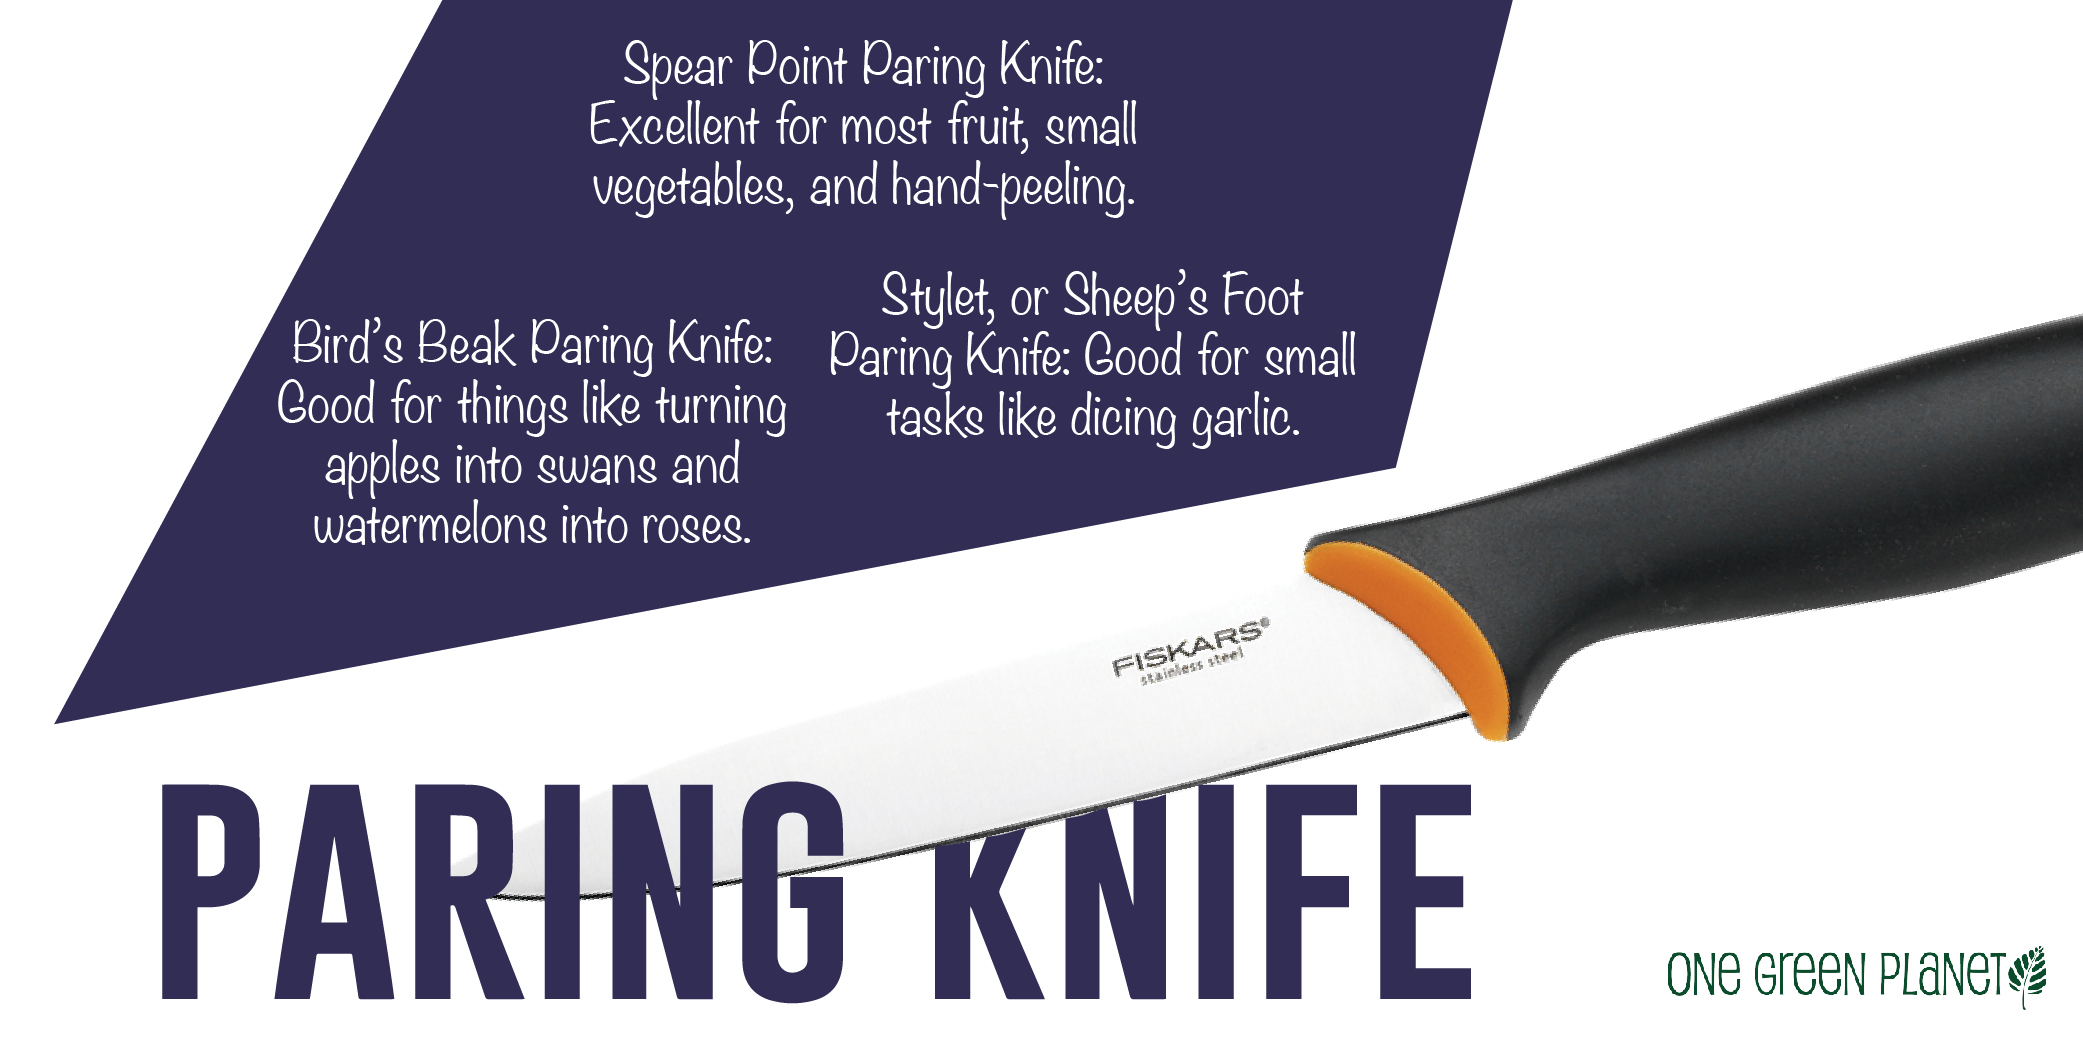 the guide to knives for the plant based chef one green planet there are several good kinds of paring knives to have the first most common is a spear point paring knife which is excellent for most fruit